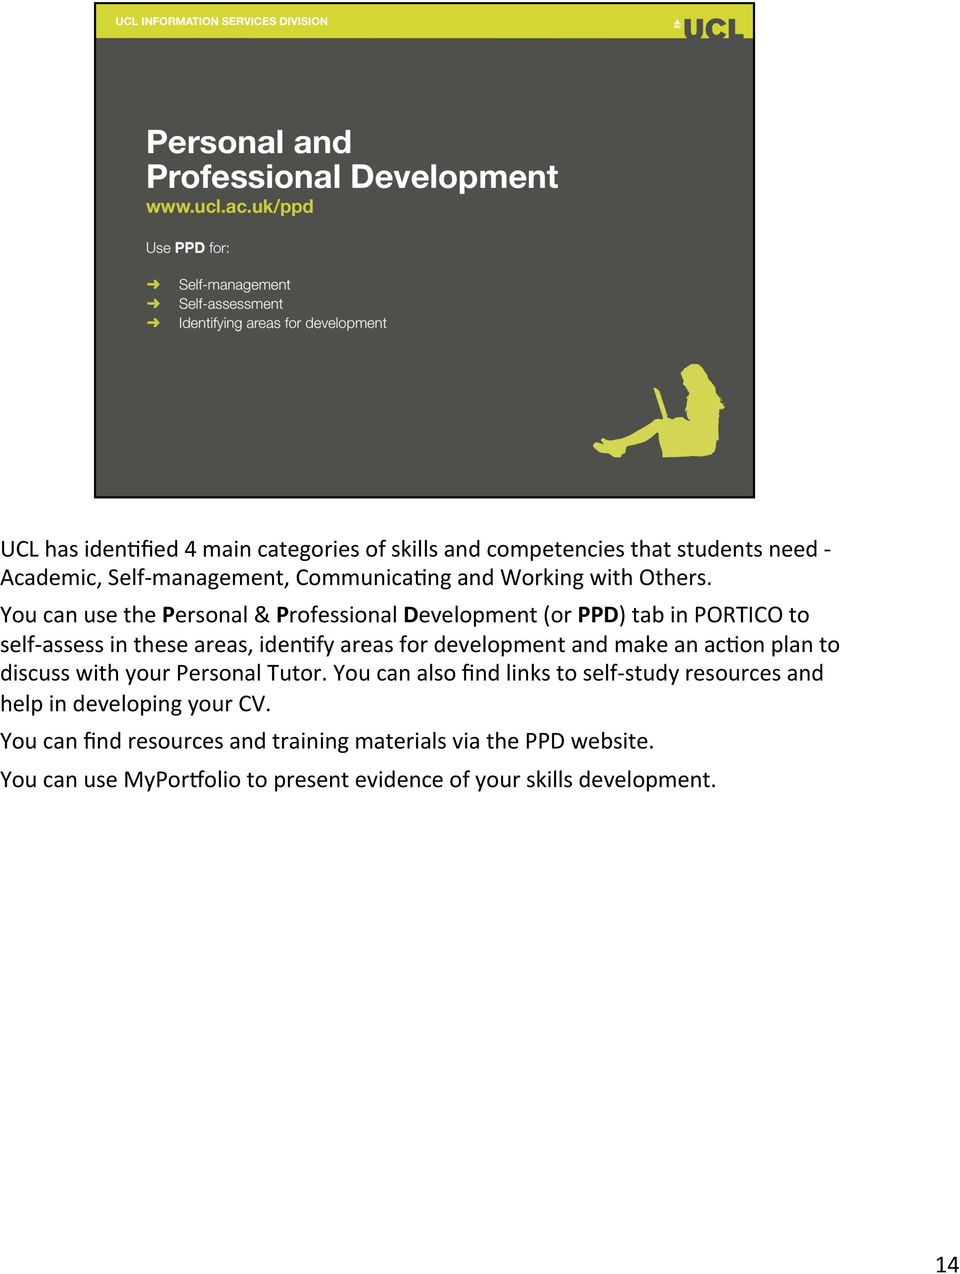 You can use the Personal & Professional Development (or PPD) tab in PORTICO to self- assess in these areas, iden,fy areas for development and